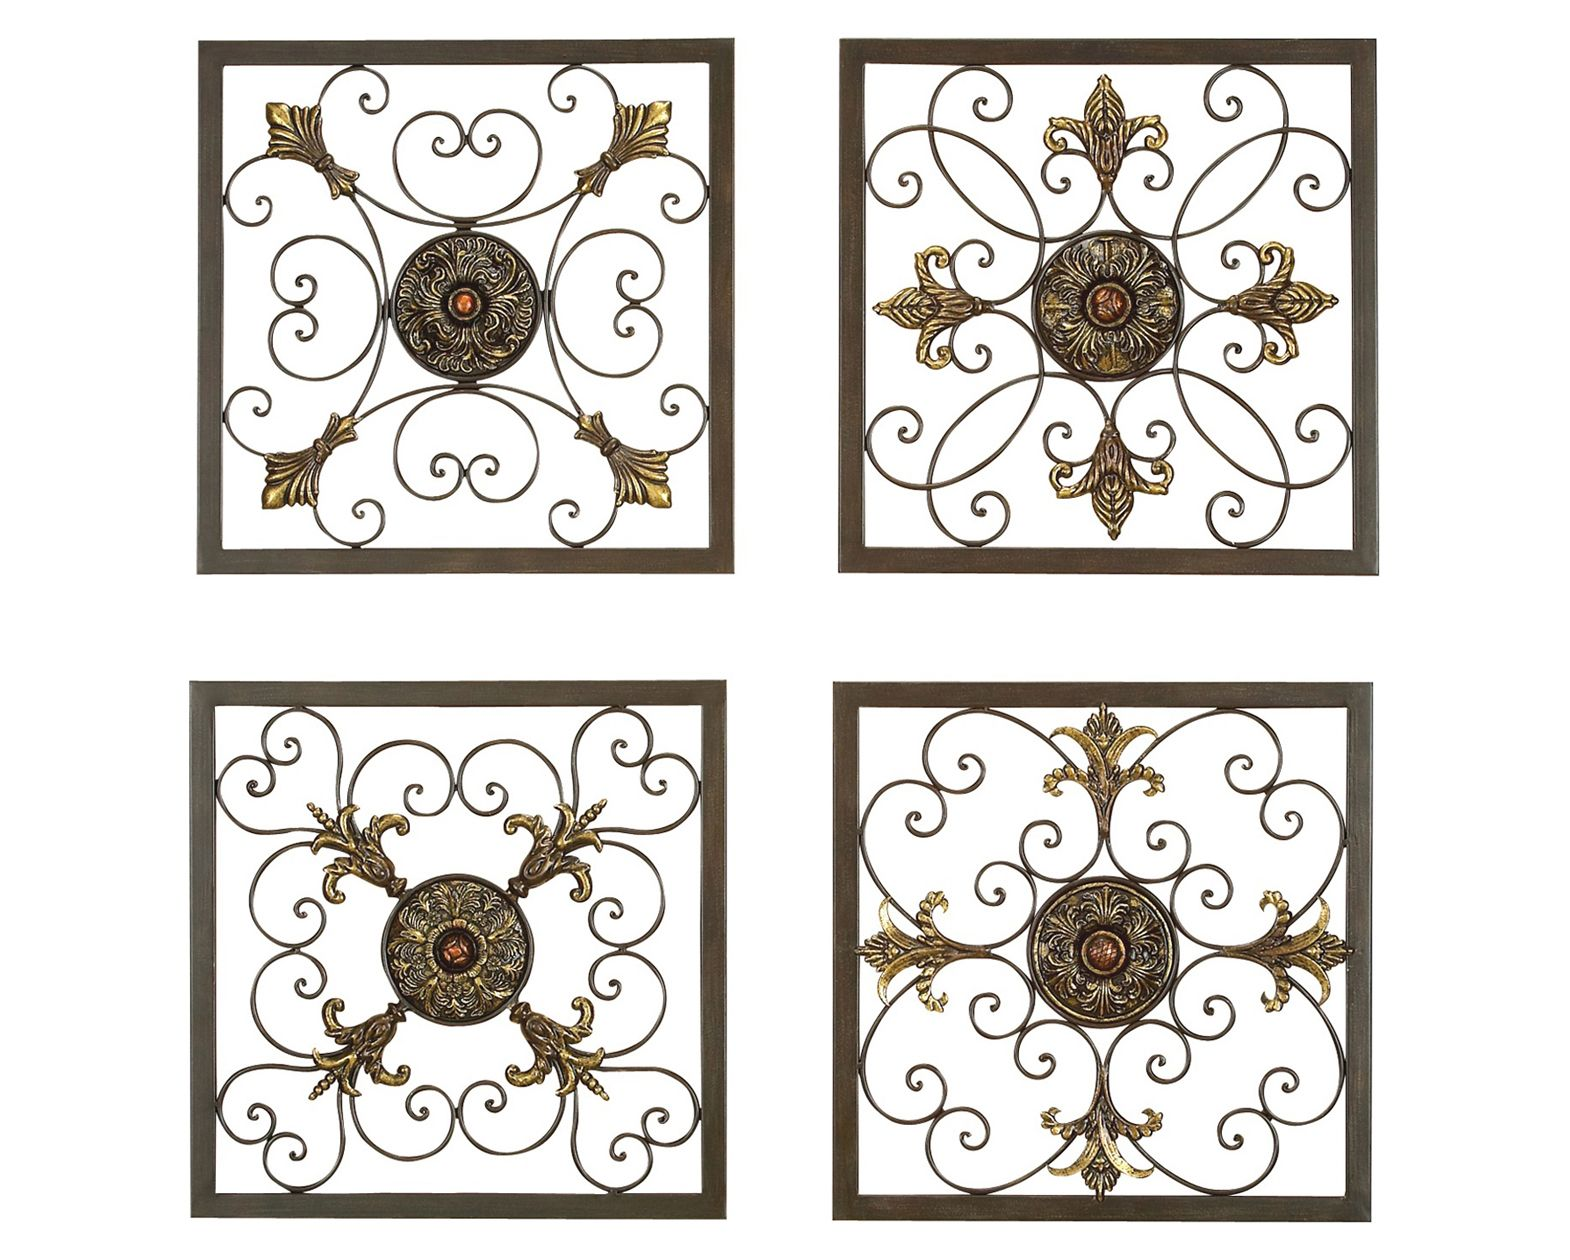 Iron Decorative Wall Pieces Material Metal Weight 14Lbsmounting Hardware Hanging Keyhole